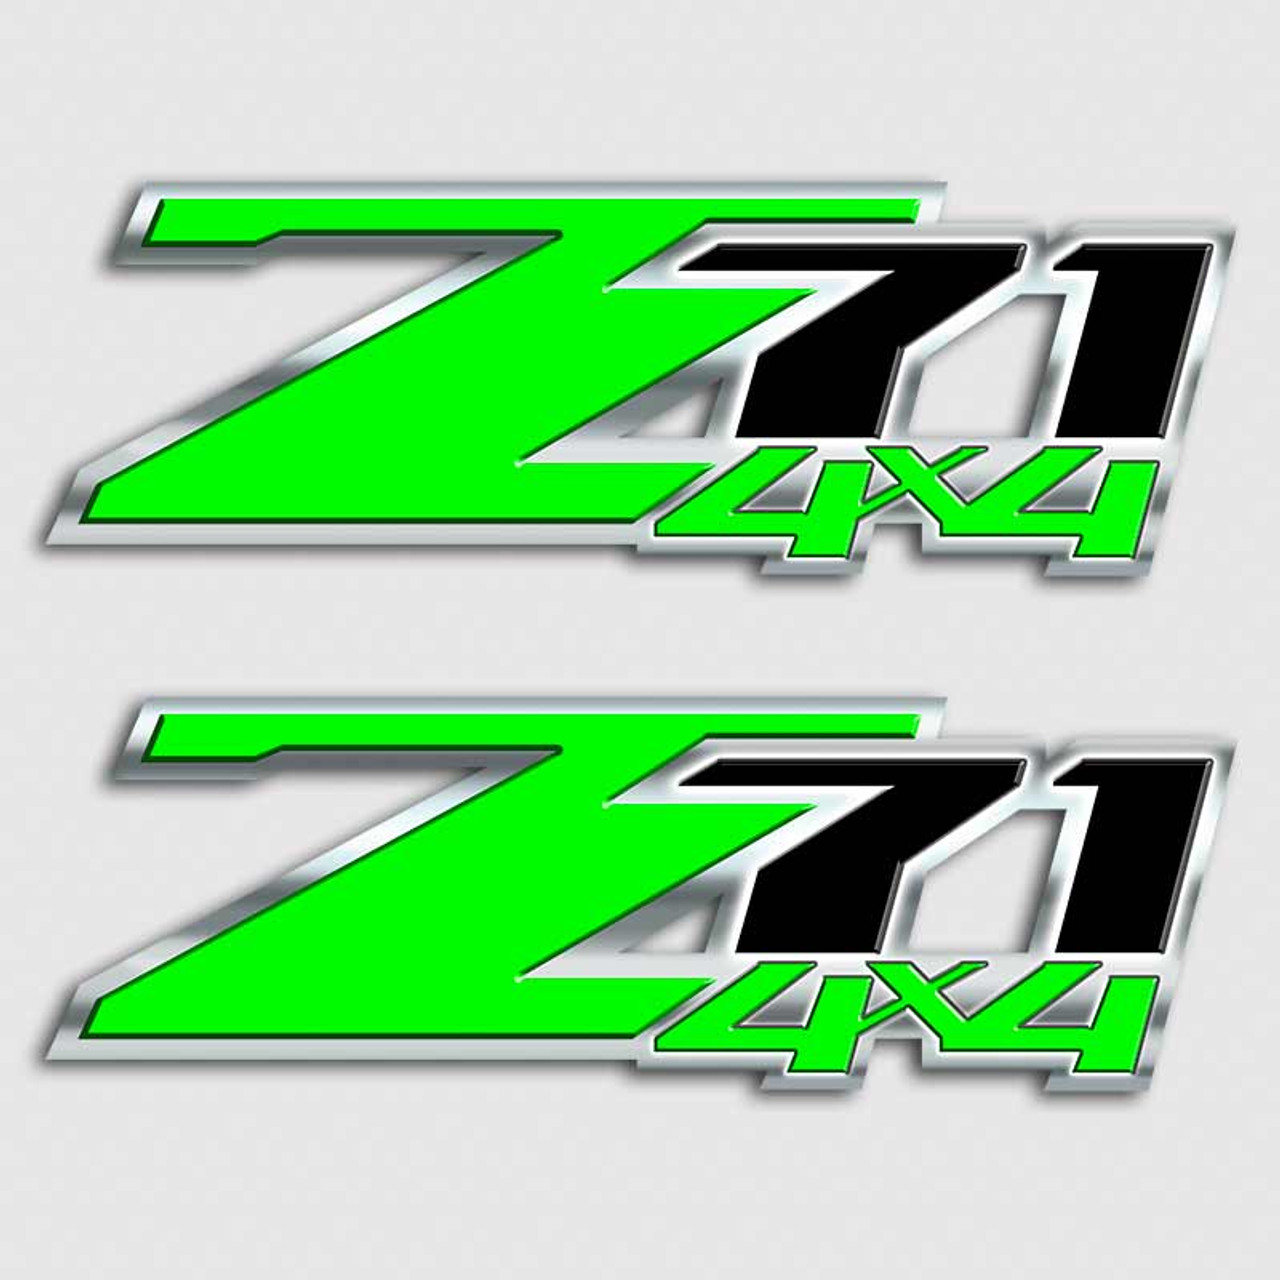 301899809354 furthermore Hulk Green Z71 4x4 Sticker Set likewise 2017 Ford Escape Colors as well 1994 Ford Ranger Sea Splash Concept moreover Mopar Logo 2. on gmc 4x4 decals